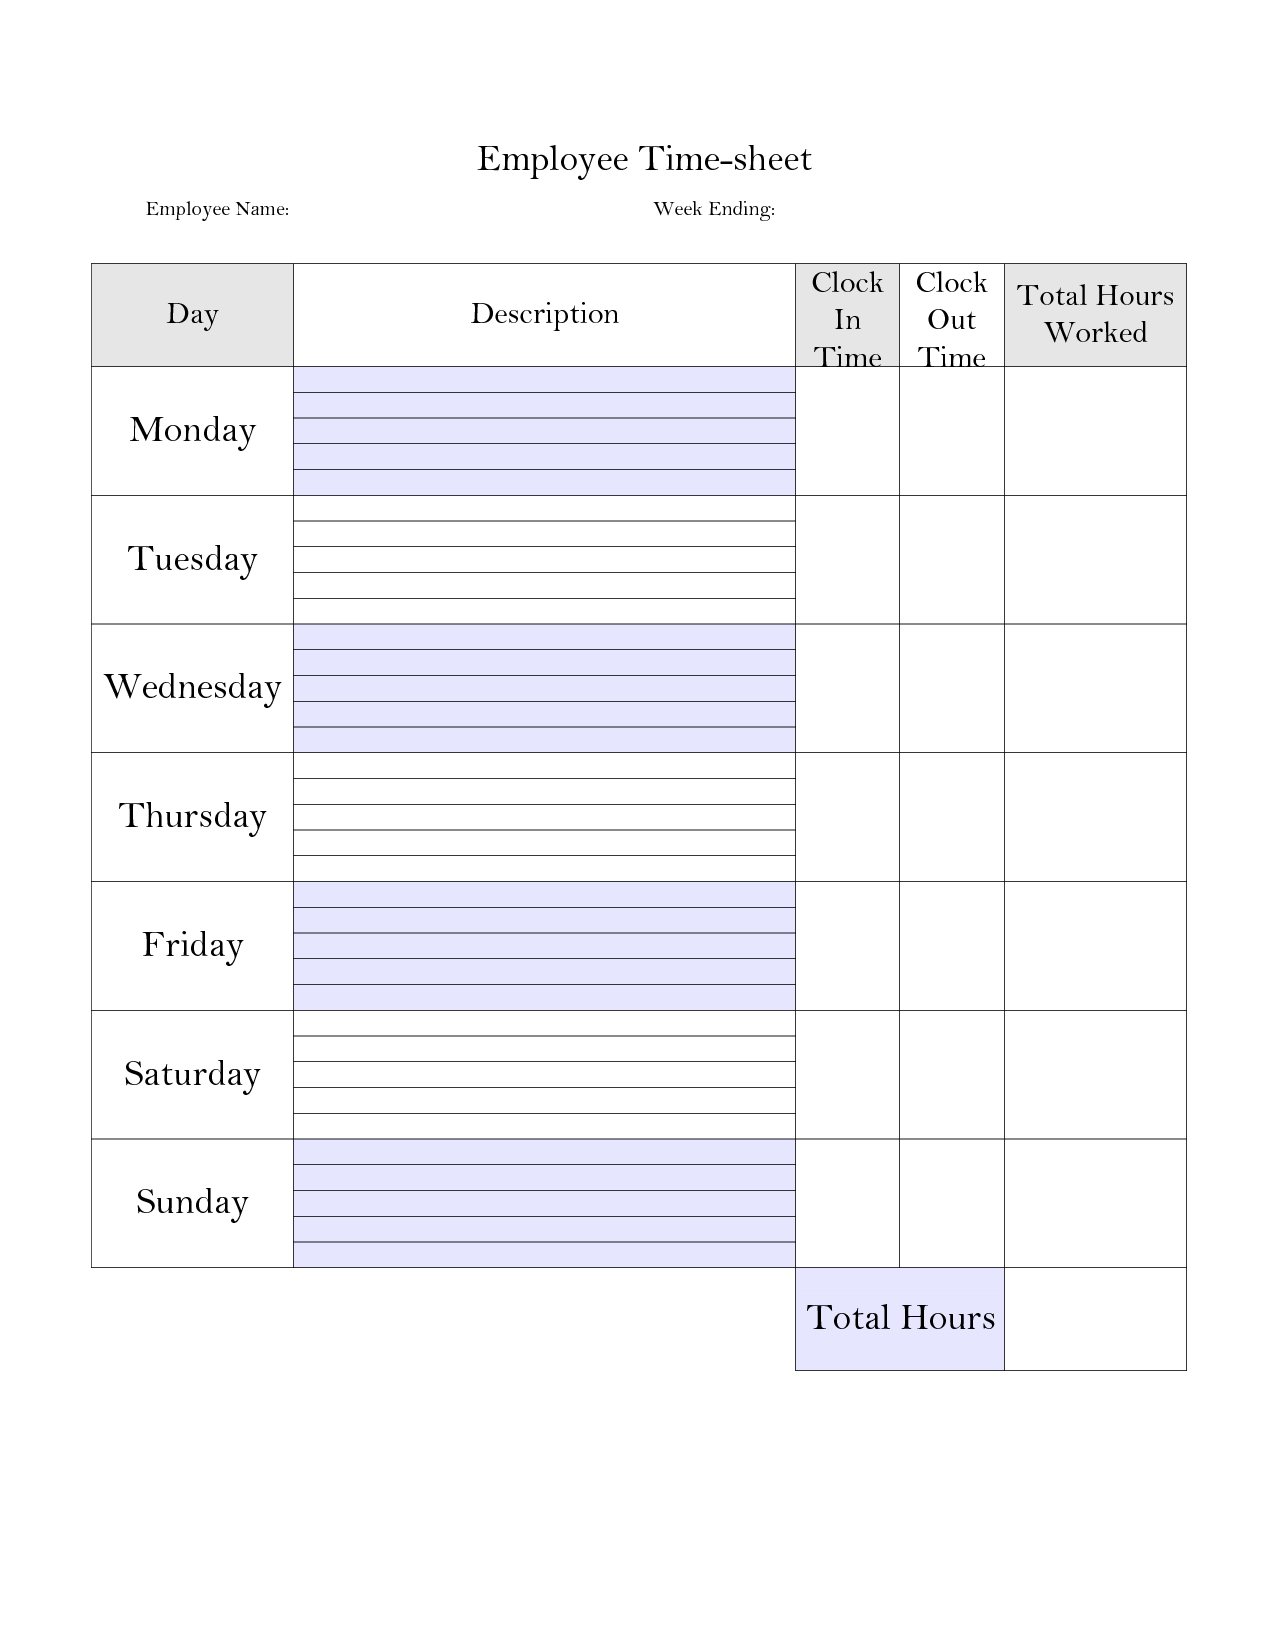 Printable Weekly Time Sheet | Printable Timecard | Teaching <3 - Free Printable Time Tracking Sheets